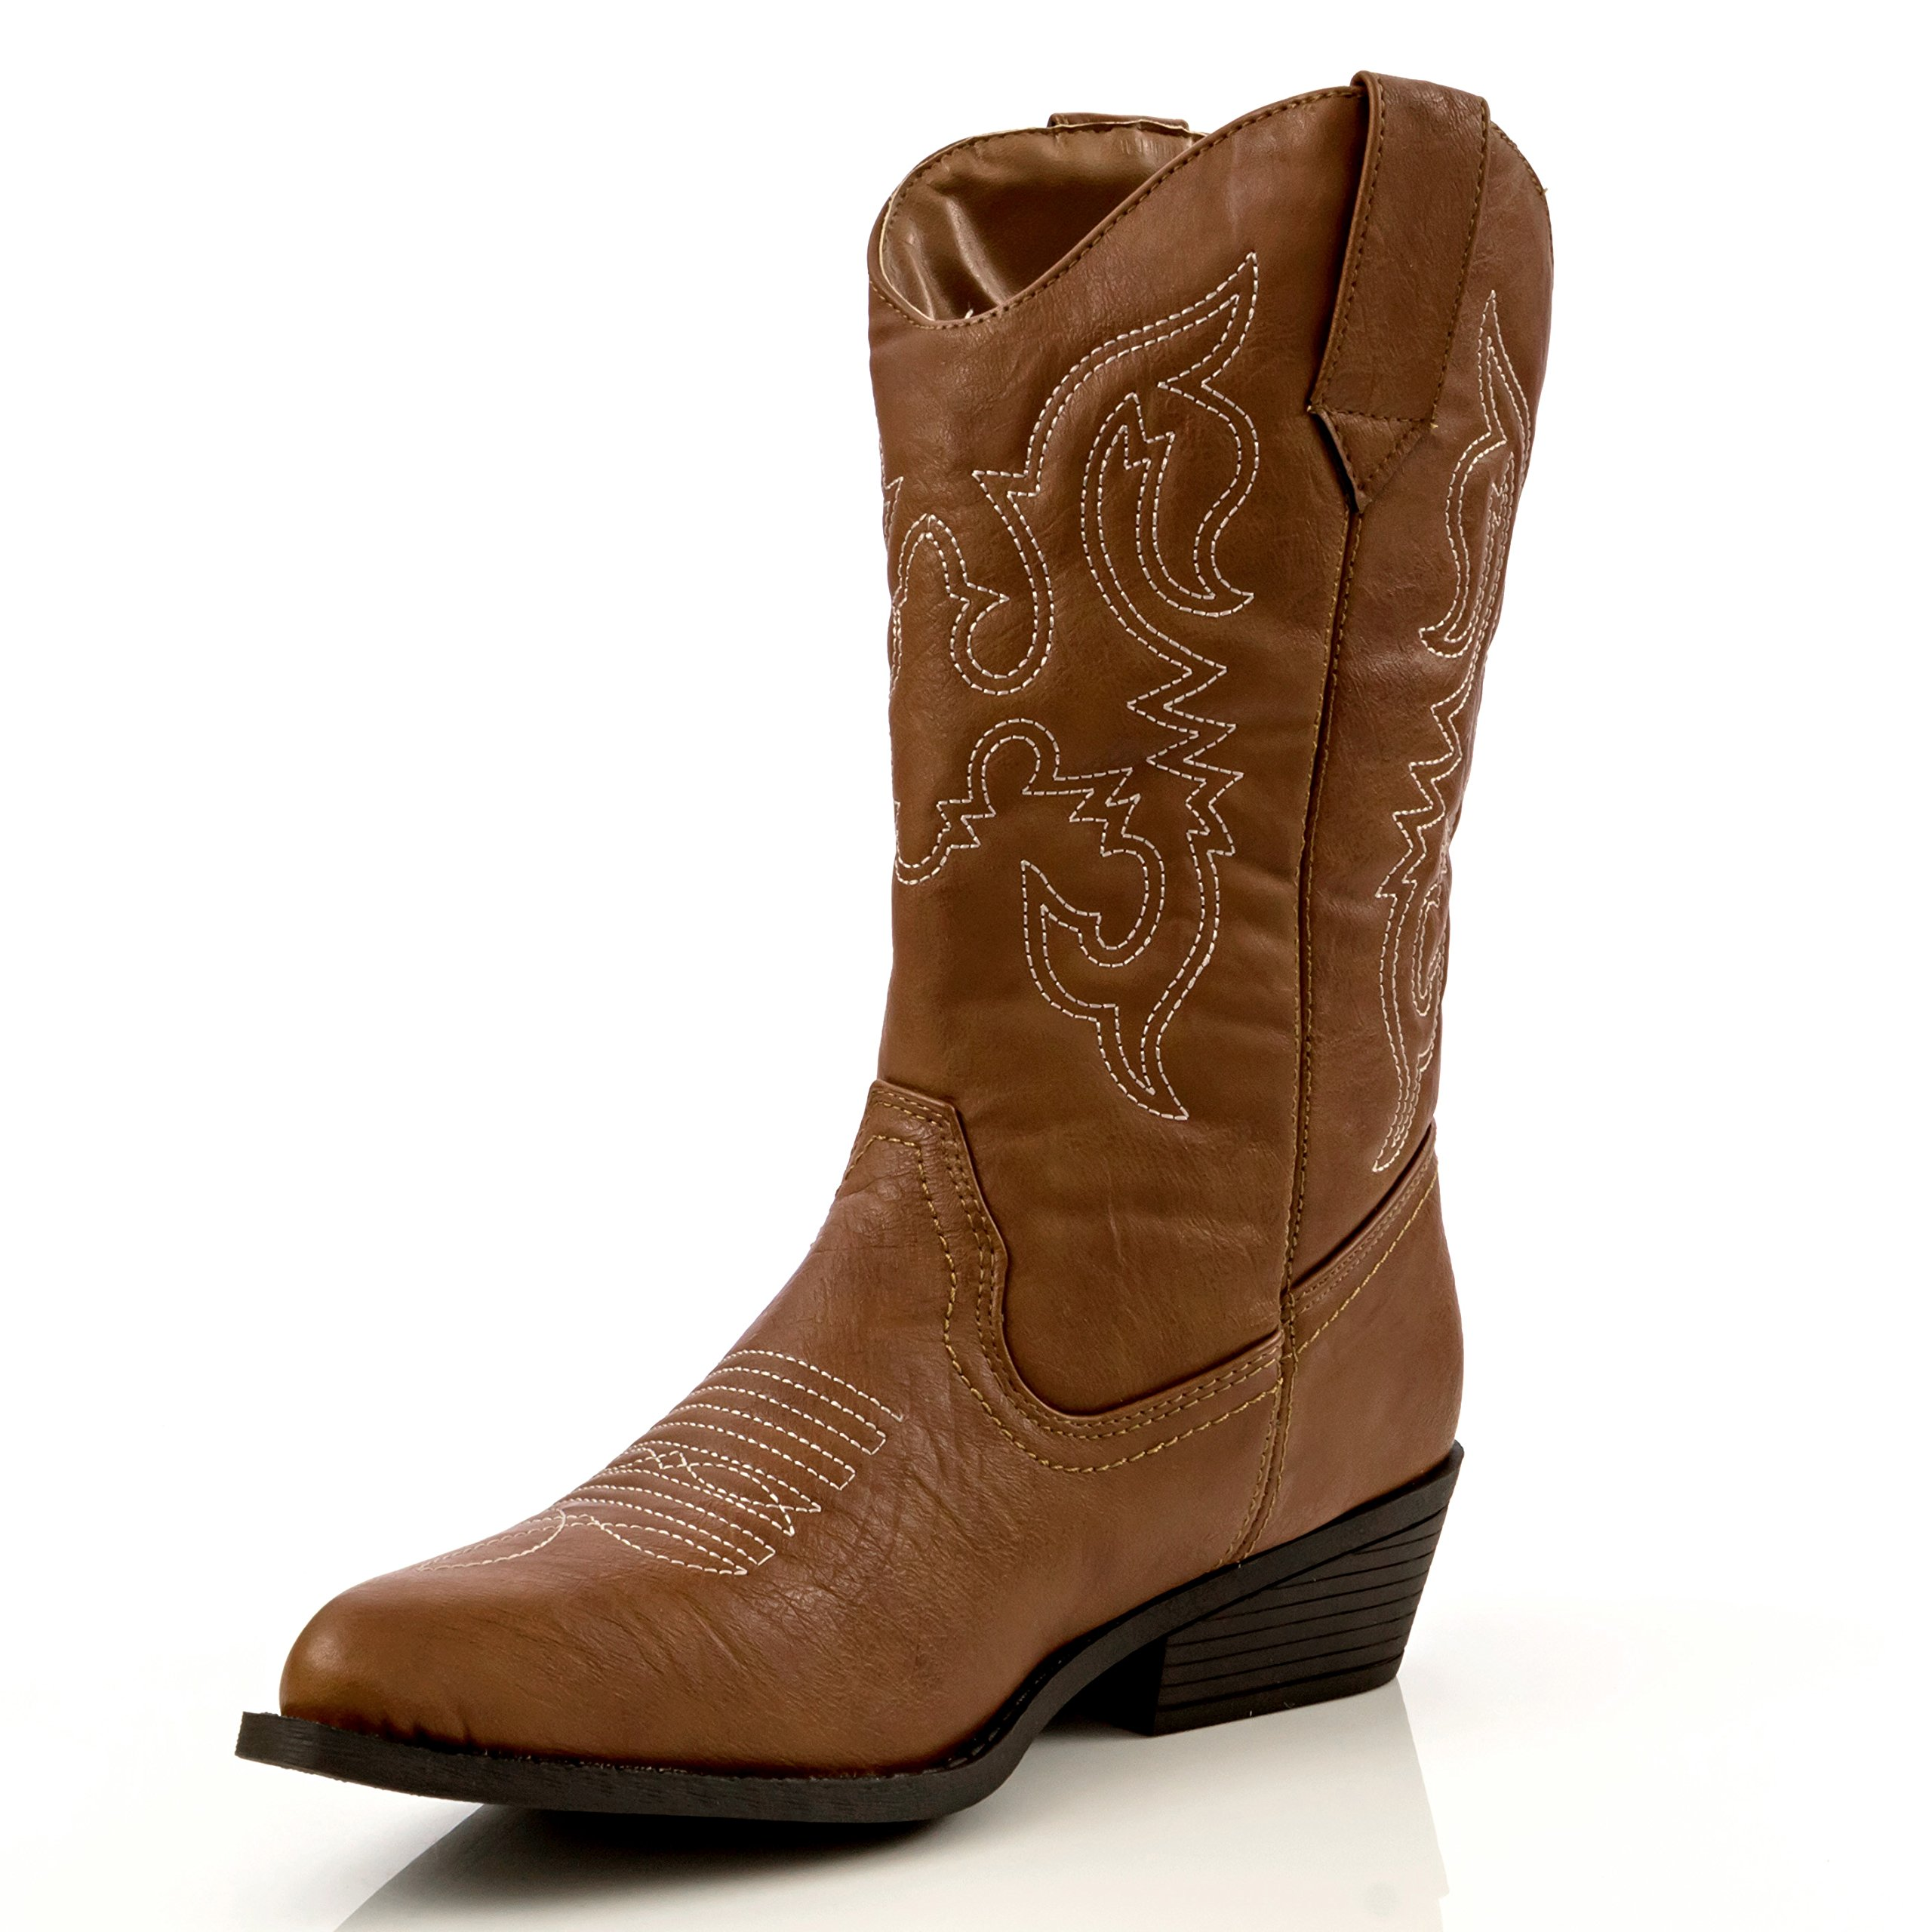 Charles Albert Women's Western Style Embroidered Cowboy Boot in Cognac Size: 6 by Charles Albert (Image #4)